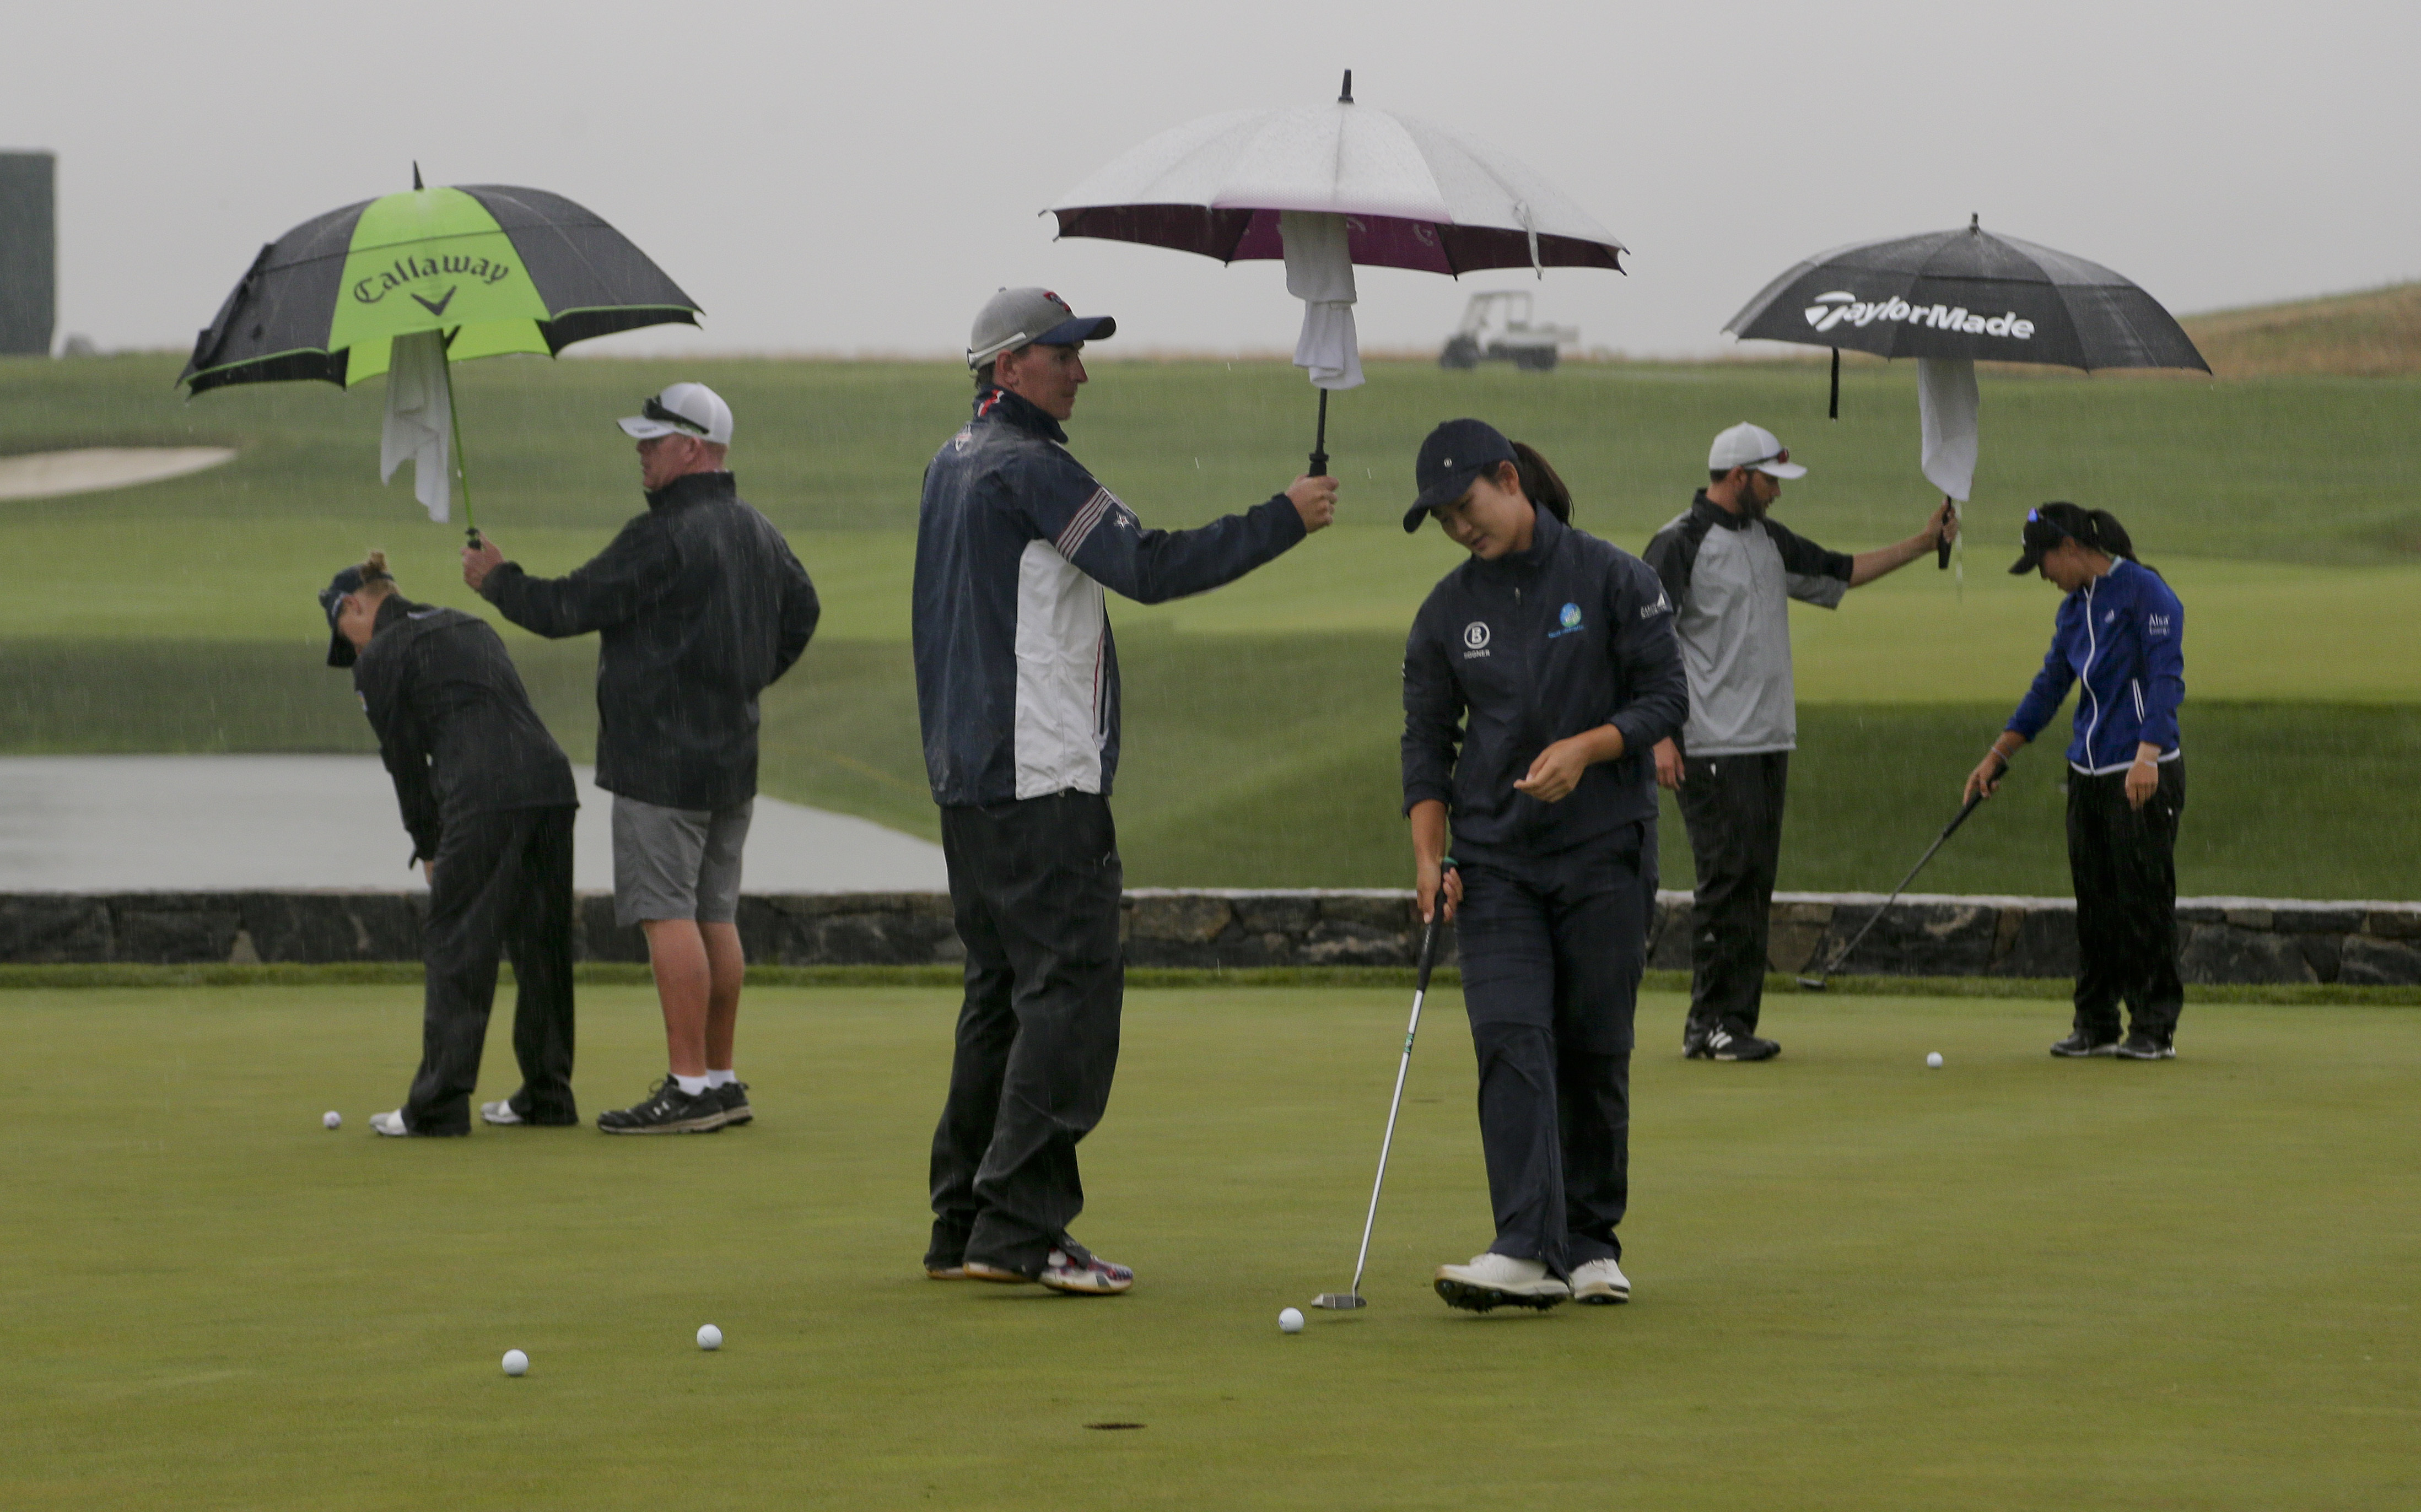 Players putt on the practice green atf the U.S. Women's Open Golf tournament Friday, July 14, 2017, in Bedminster, N.J. A rain delay Thursday pushed back the start of the second round. (AP Photo/Seth Wenig)